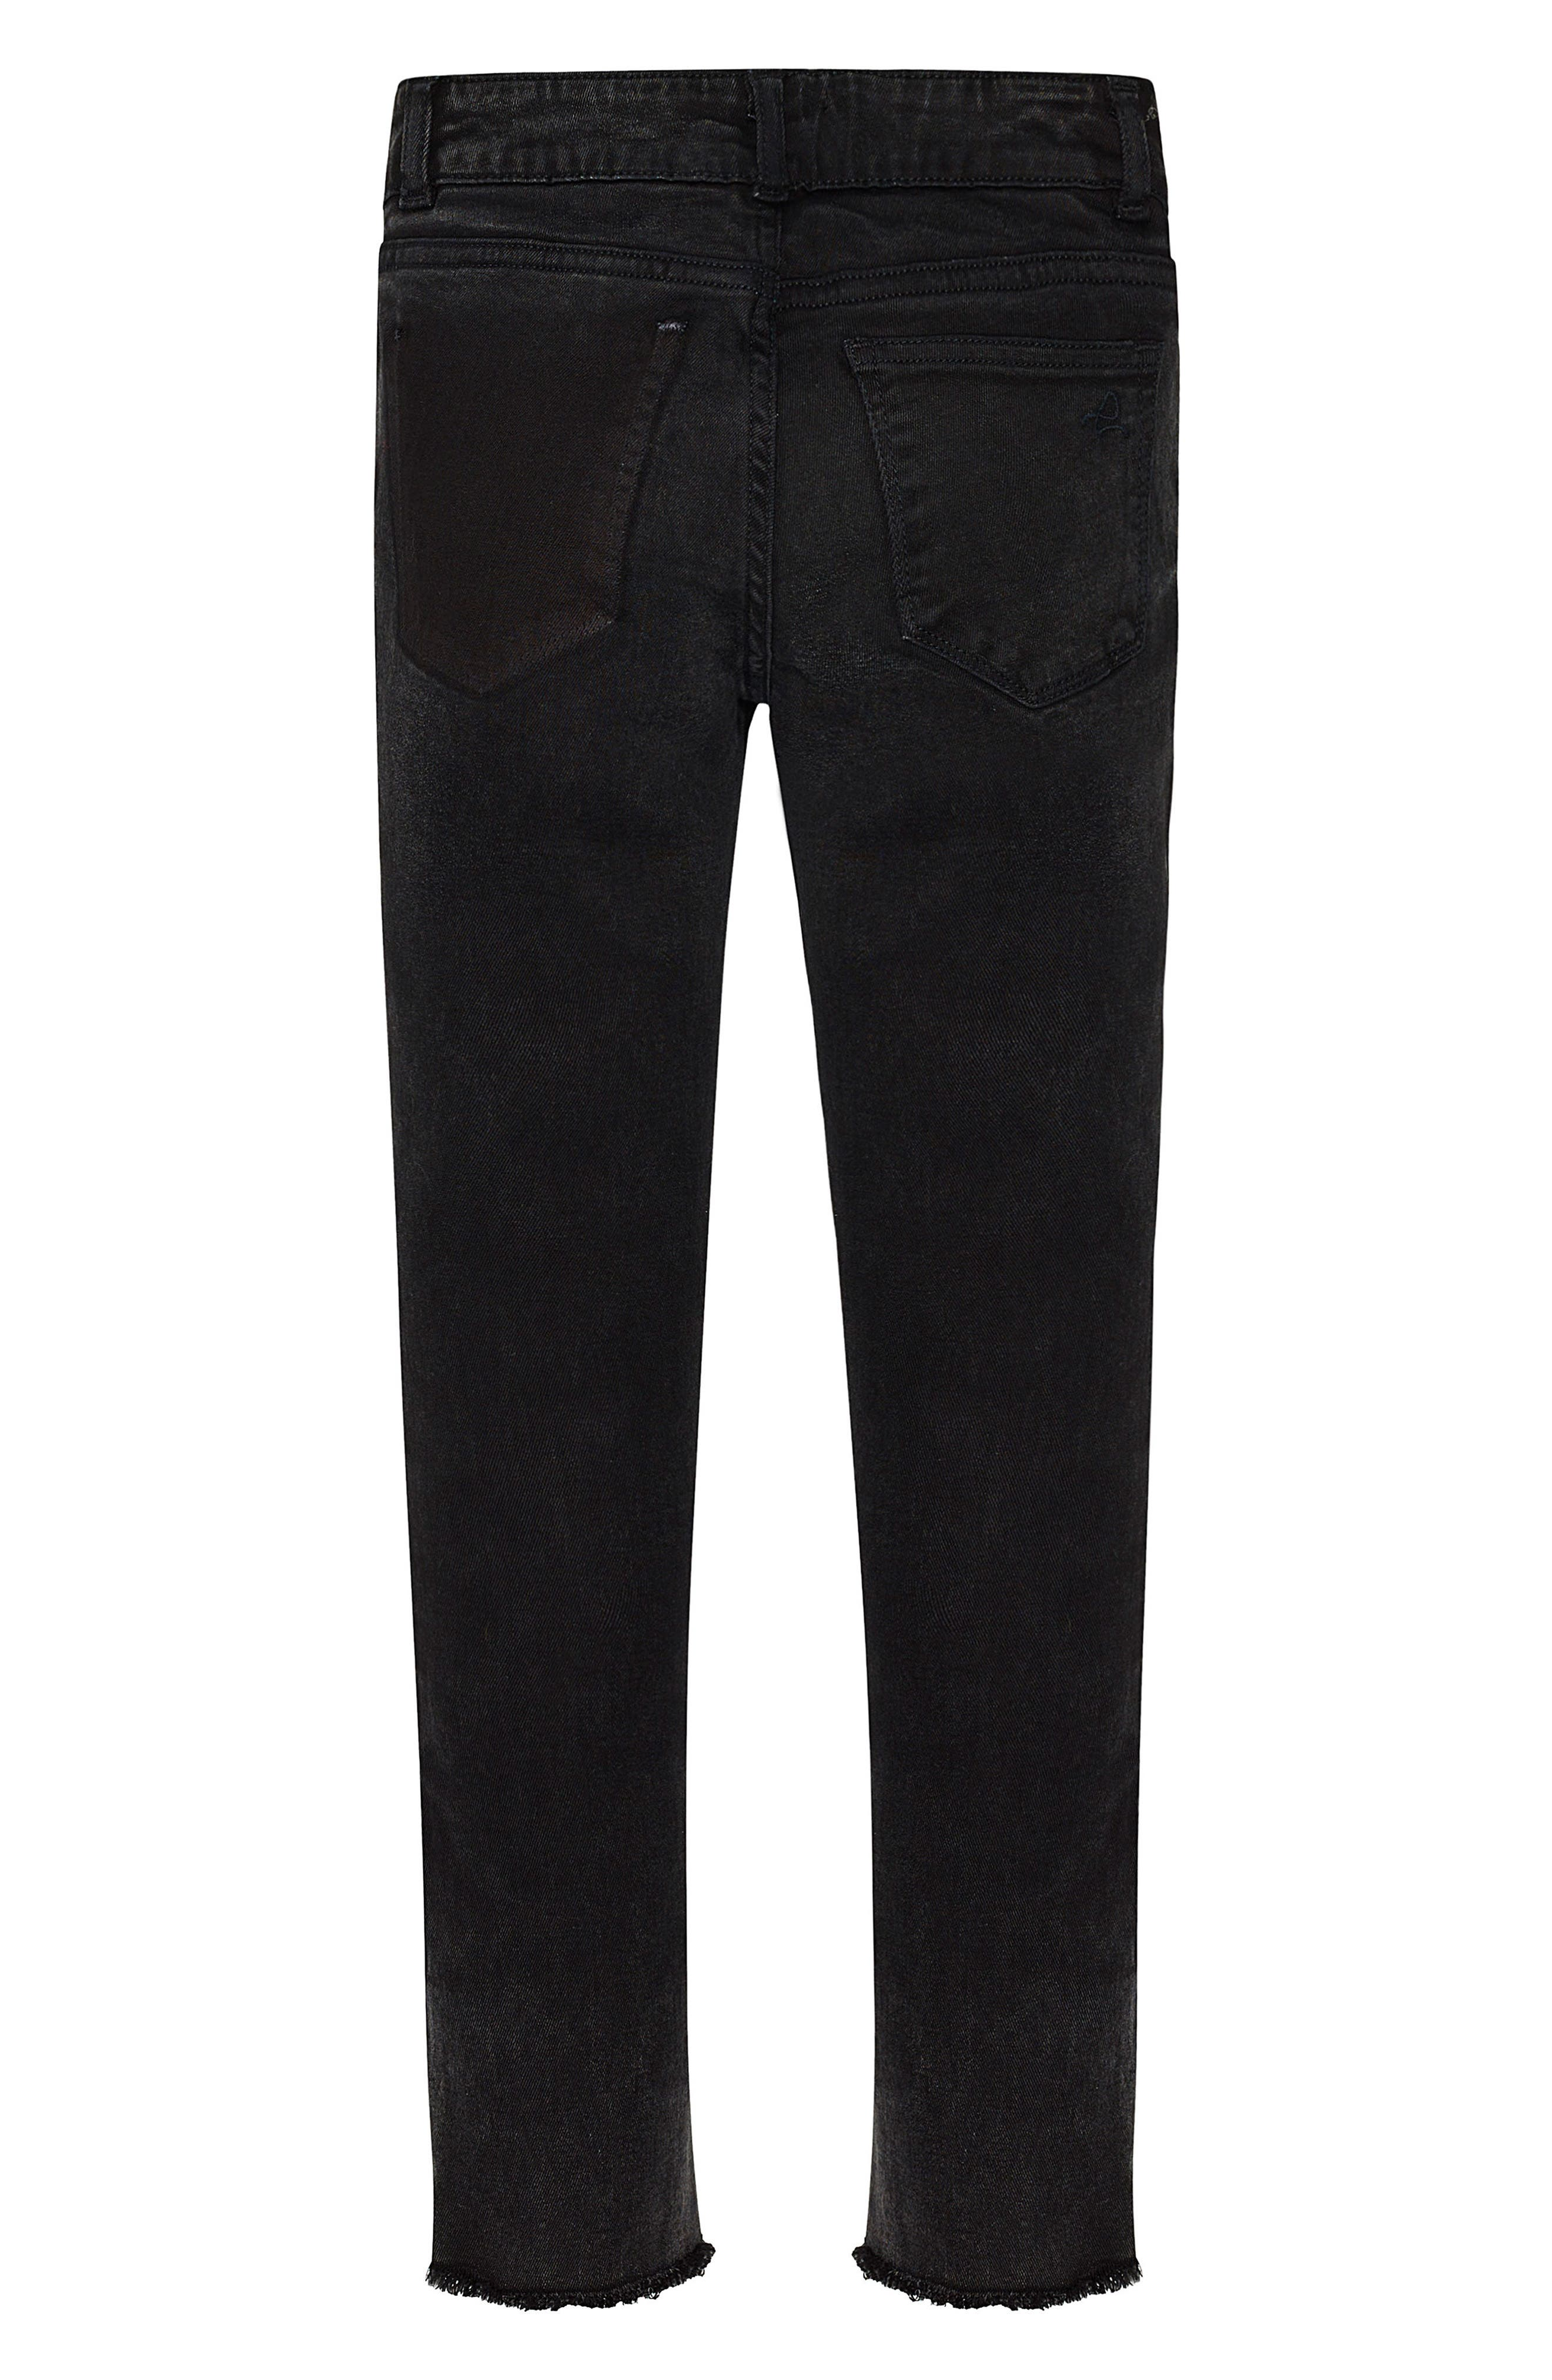 Alternate Image 2  - DL1961 Chloe Moto Skinny Jeans (Big Girls)